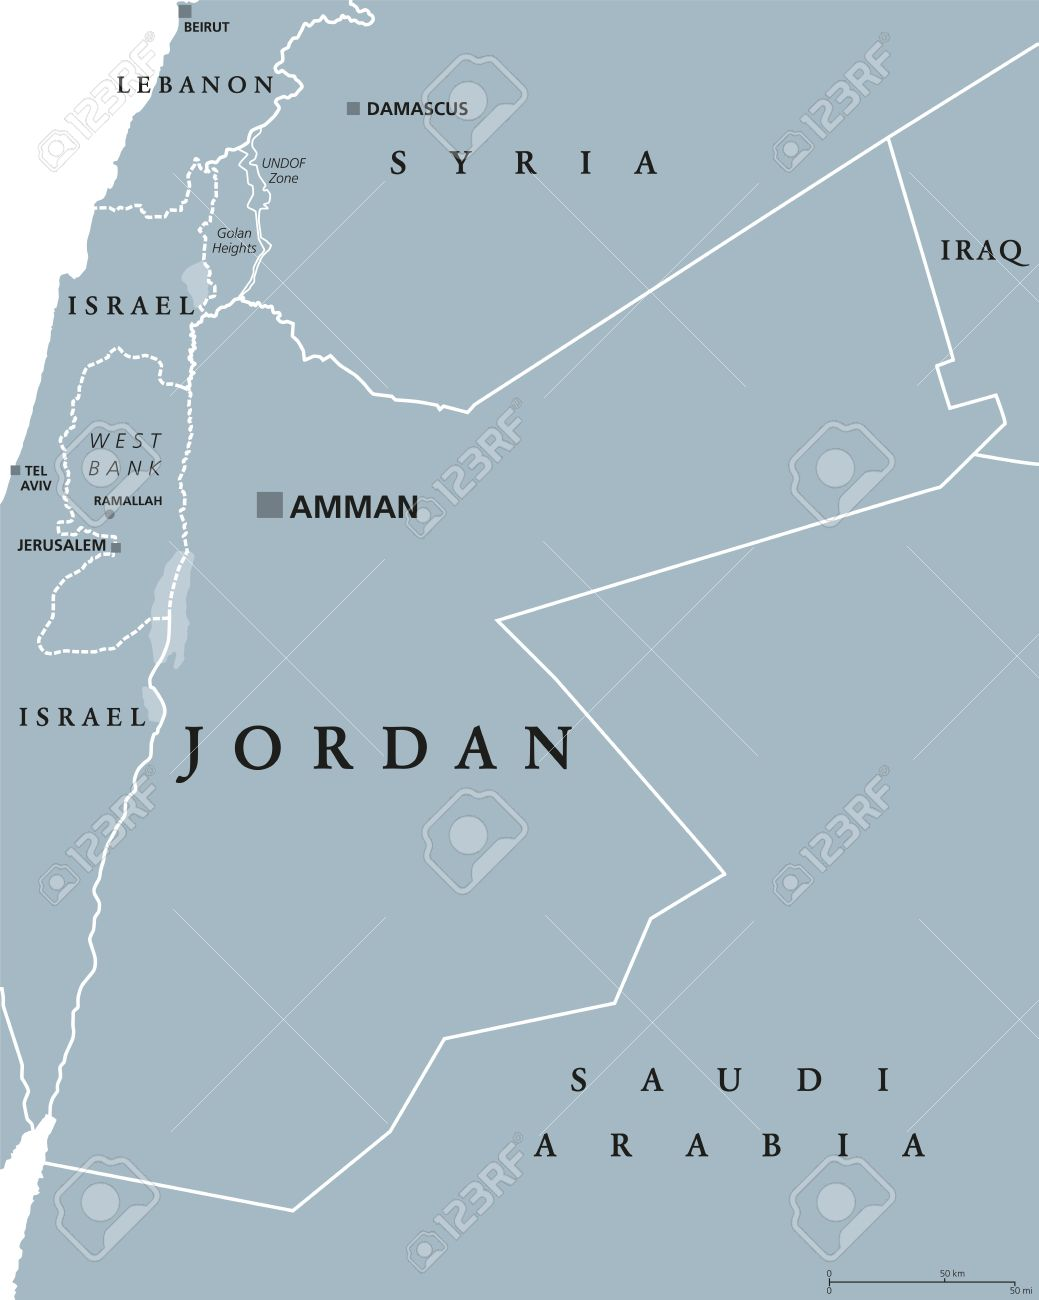 Jordan Political Map.Jordan Political Map With Capital Amman The Hashemite Kingdom